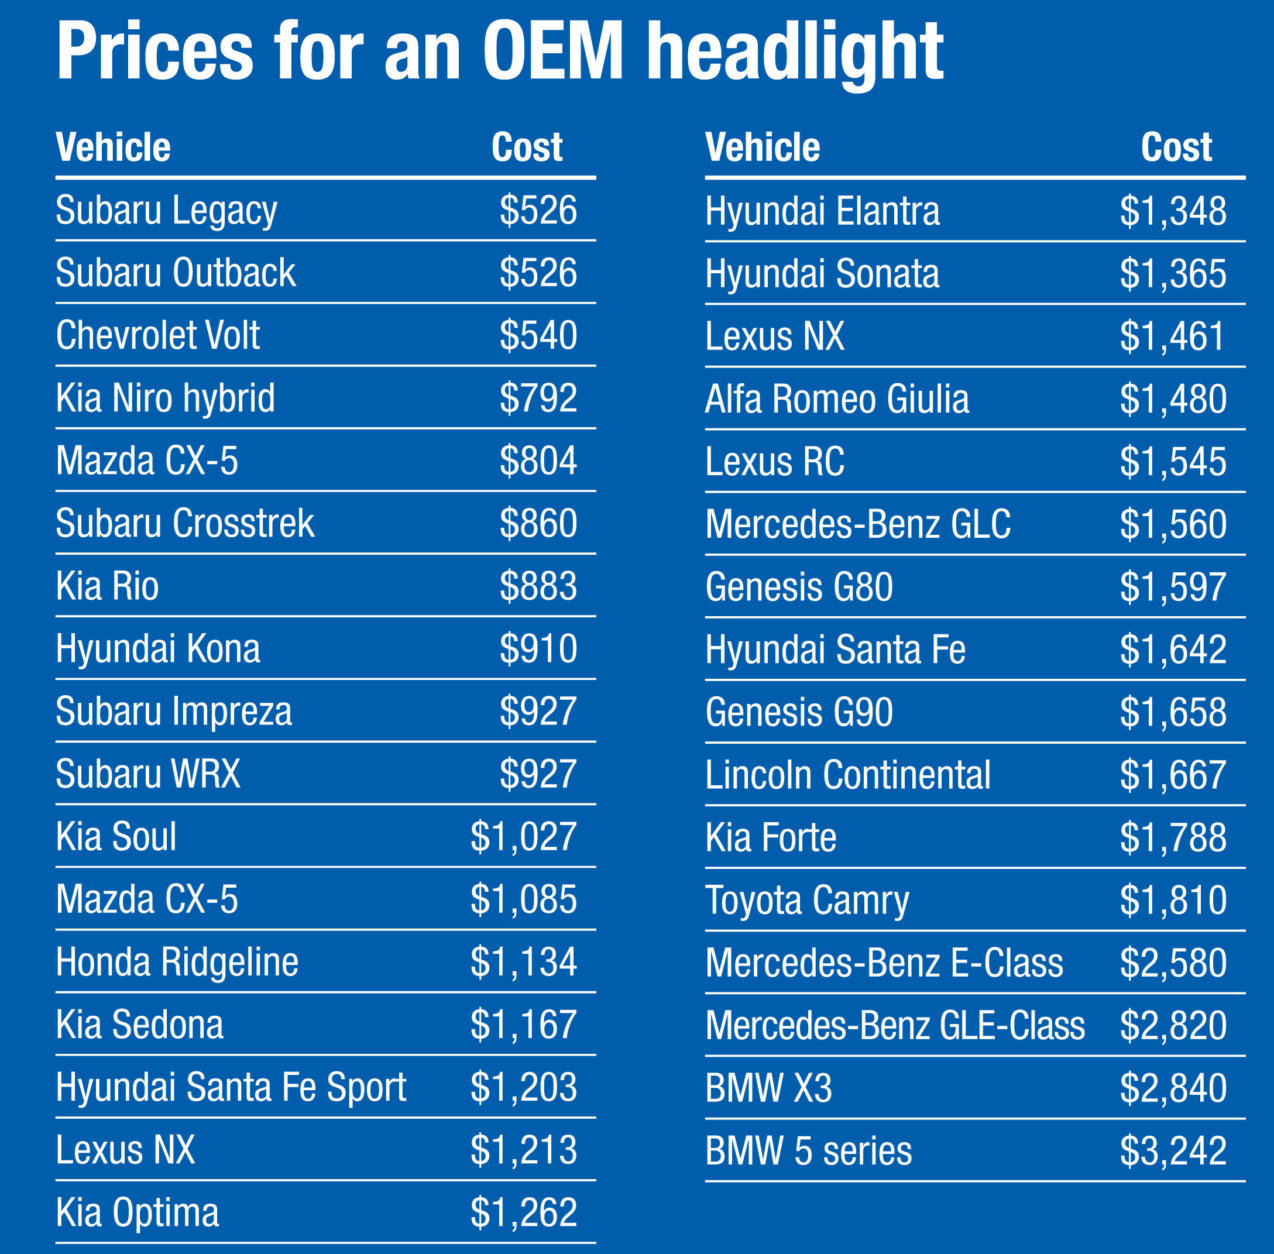 Headlight repair costs can skyrocket too. IIHS looked into replacement prices for original equipment manufacturer (OEM) headlights. (Courtesy IIHS)